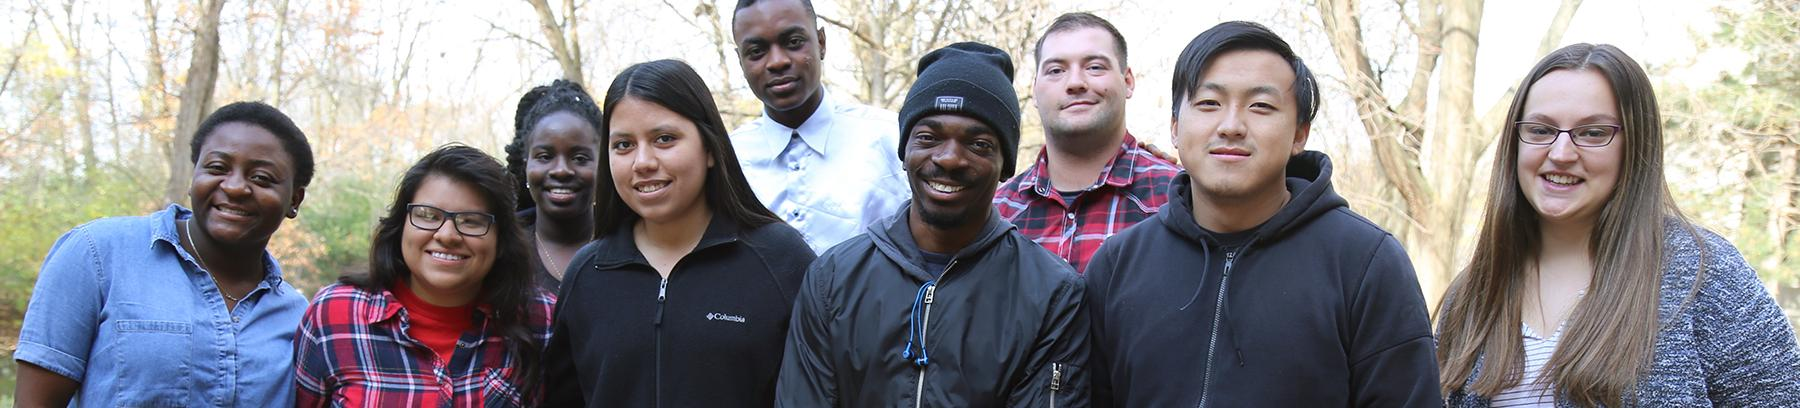 Diverse group of students outdoors in front of a background of trees.